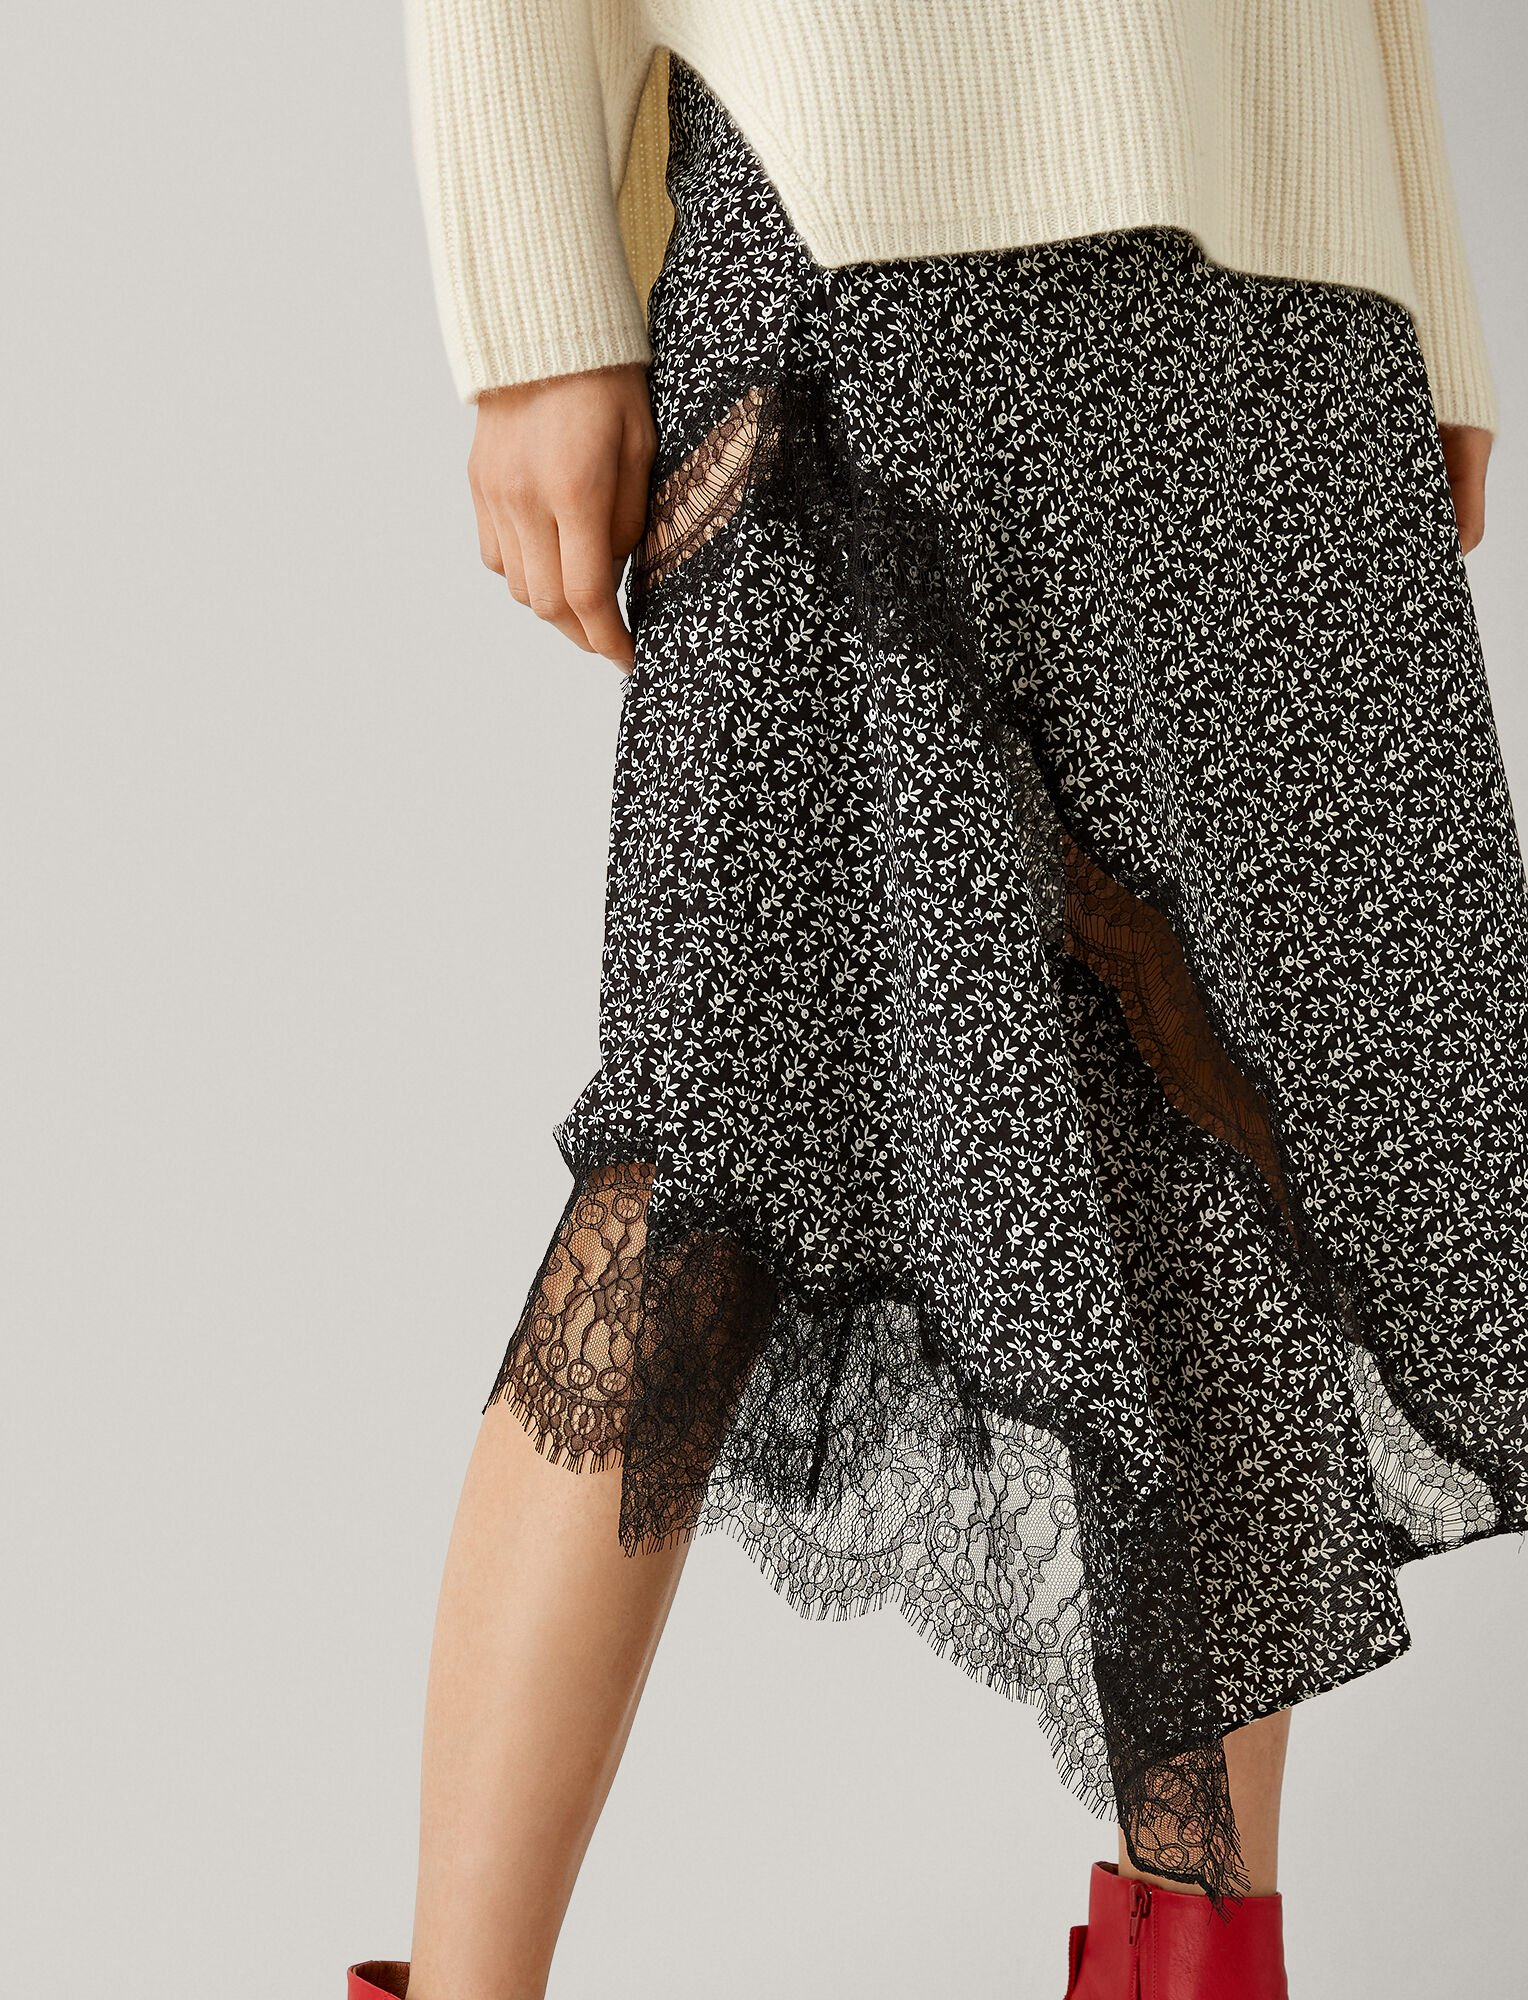 Joseph, Templer Floral Lace Skirt, in BLACK